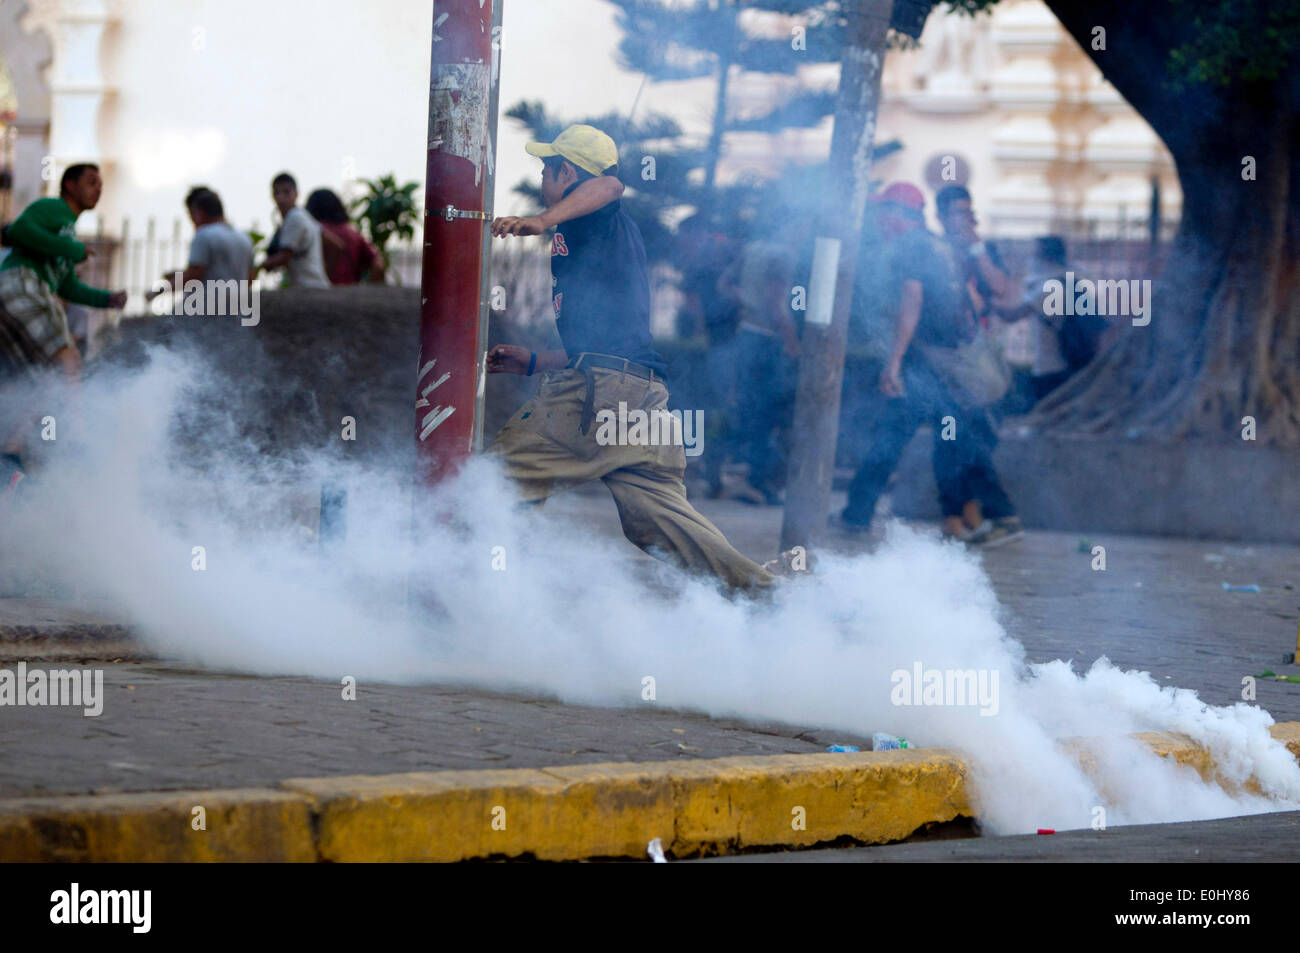 Tegucigalpa, Honduras. 13th May, 2014. Supporters of former Honduran President Manuel Zelaya participate in a clash with police elements in front of the National Congress, in Tegucigalpa, Honduras, on May 13, 2014. Followers and deputies of the Liberty and Refoundation Party (Libre, for its acronym in Spanish), the second political force in Honduras, broke in the National Congress on Tuesday, after clashing with police elements that guarded the Legislative Palace. Credit:  Rafael Ochoa/Xinhua/Alamy Live News Stock Photo